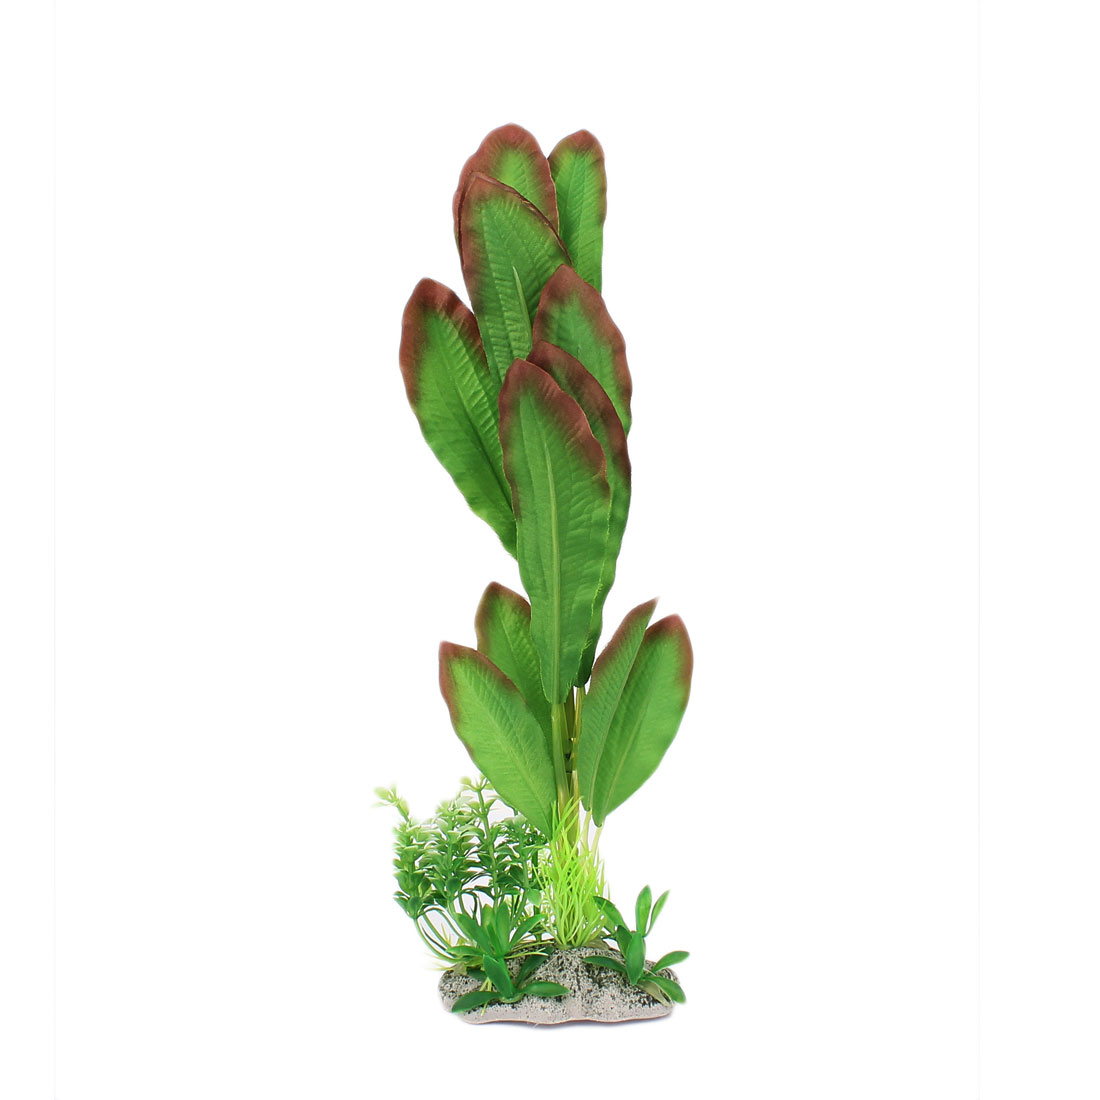 Plastic Underwater Aquatic Plant Fish Tank Aquarium Decor 30cm High Green